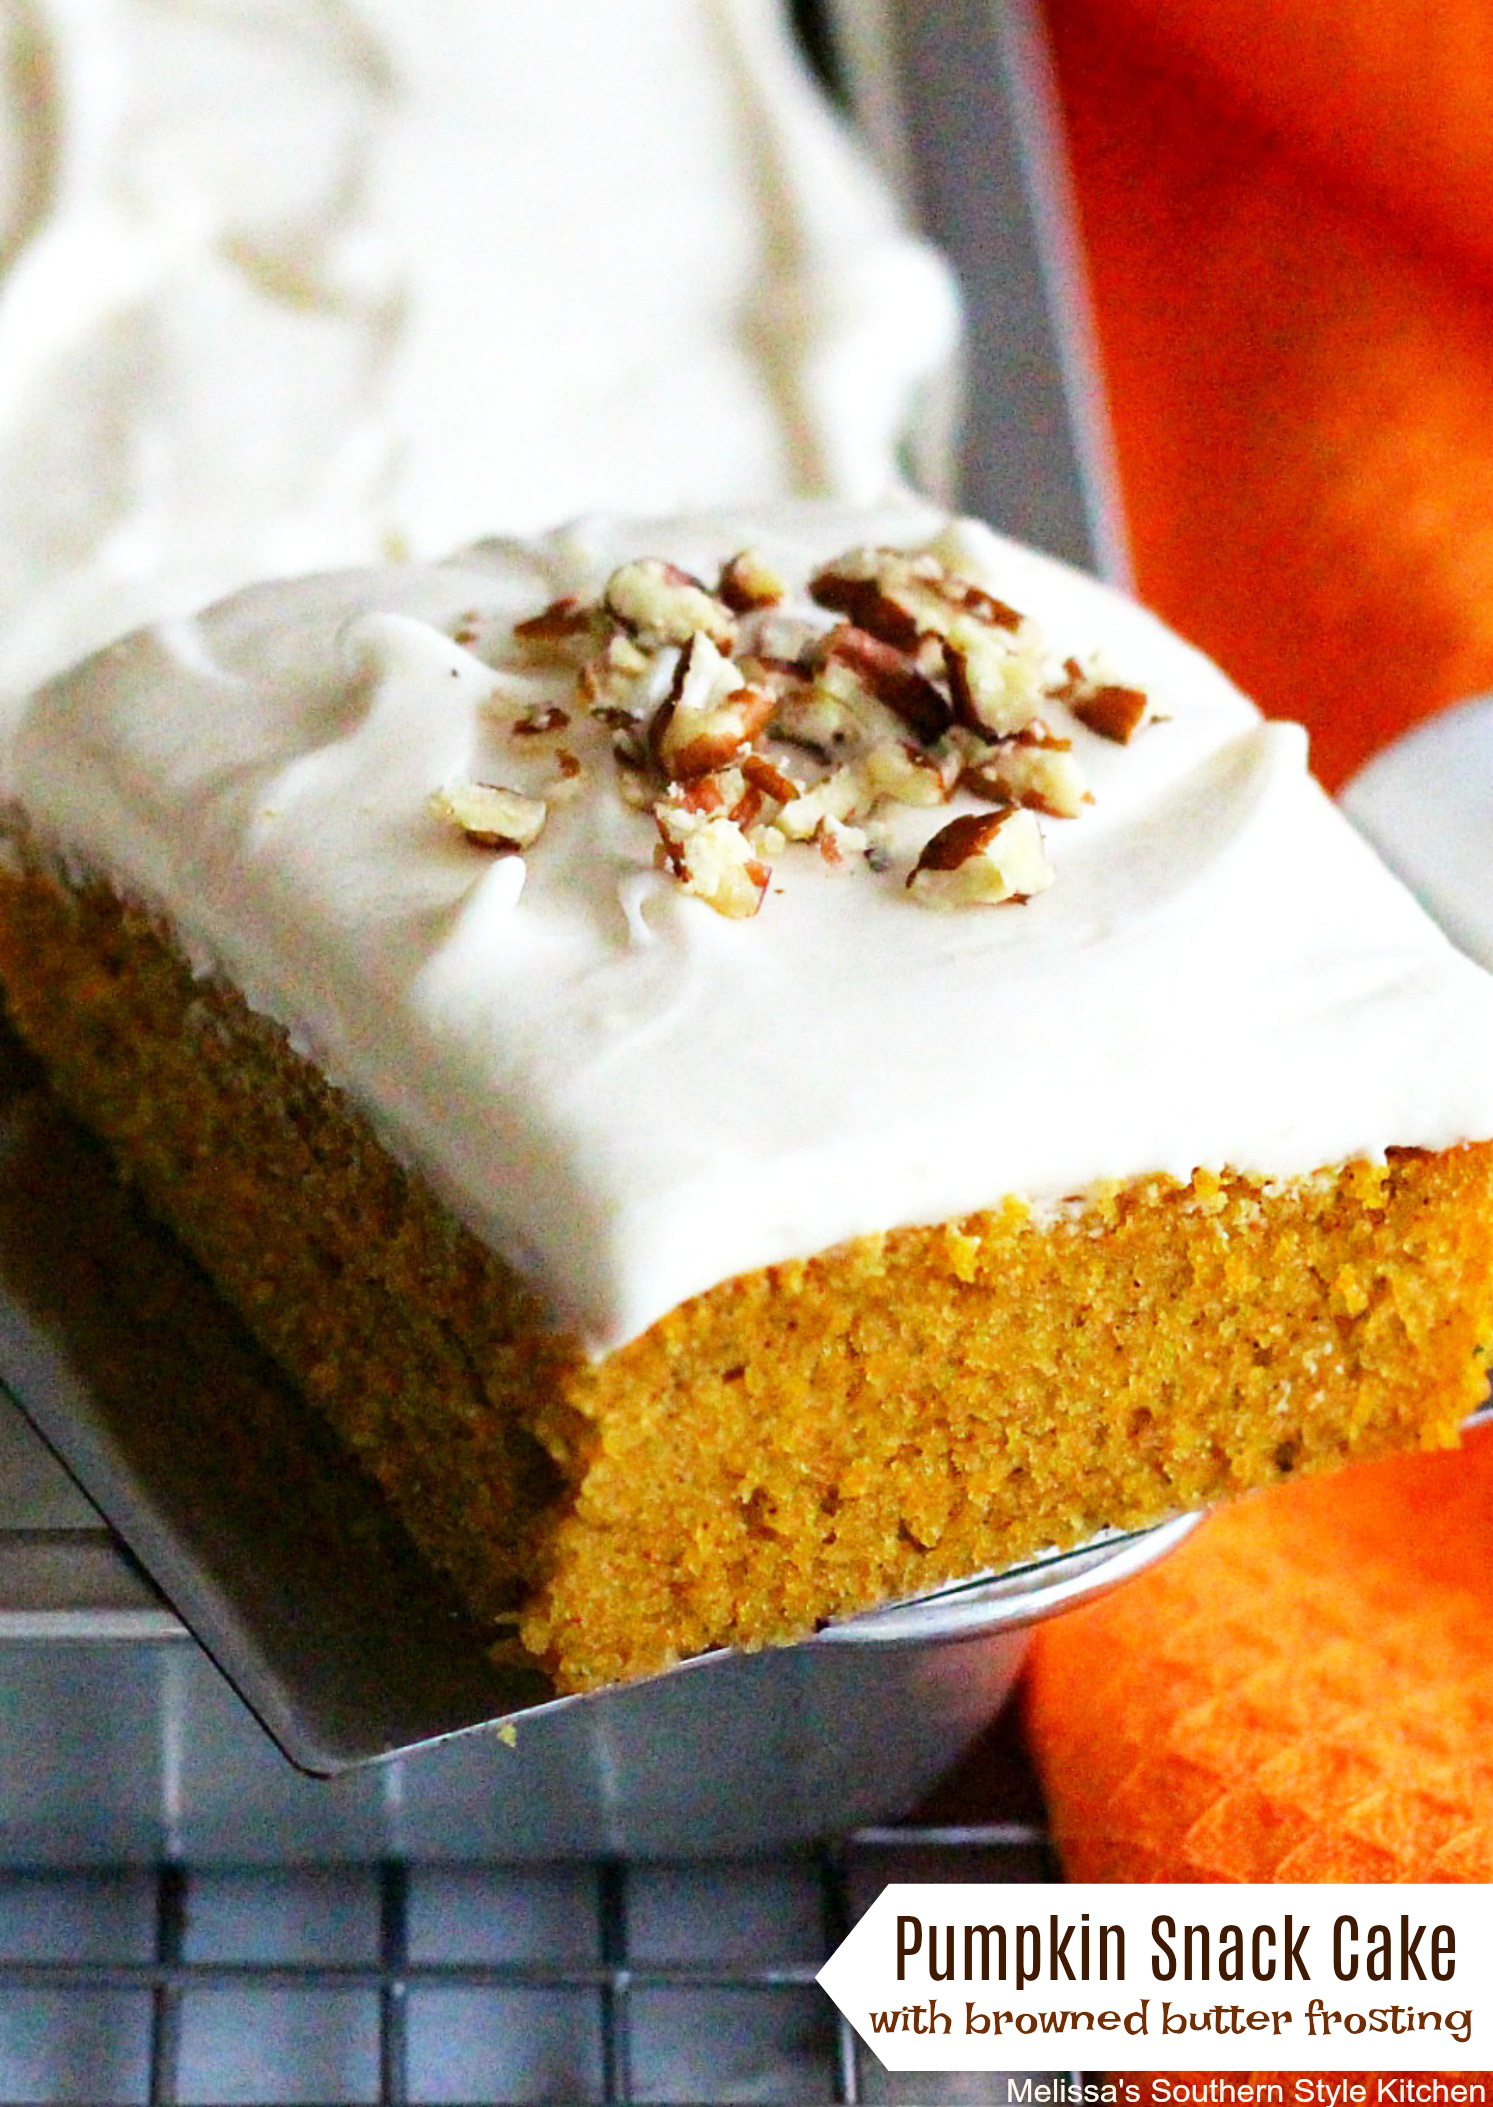 Pumpkin Snack Cake With Browned Butter Frosting